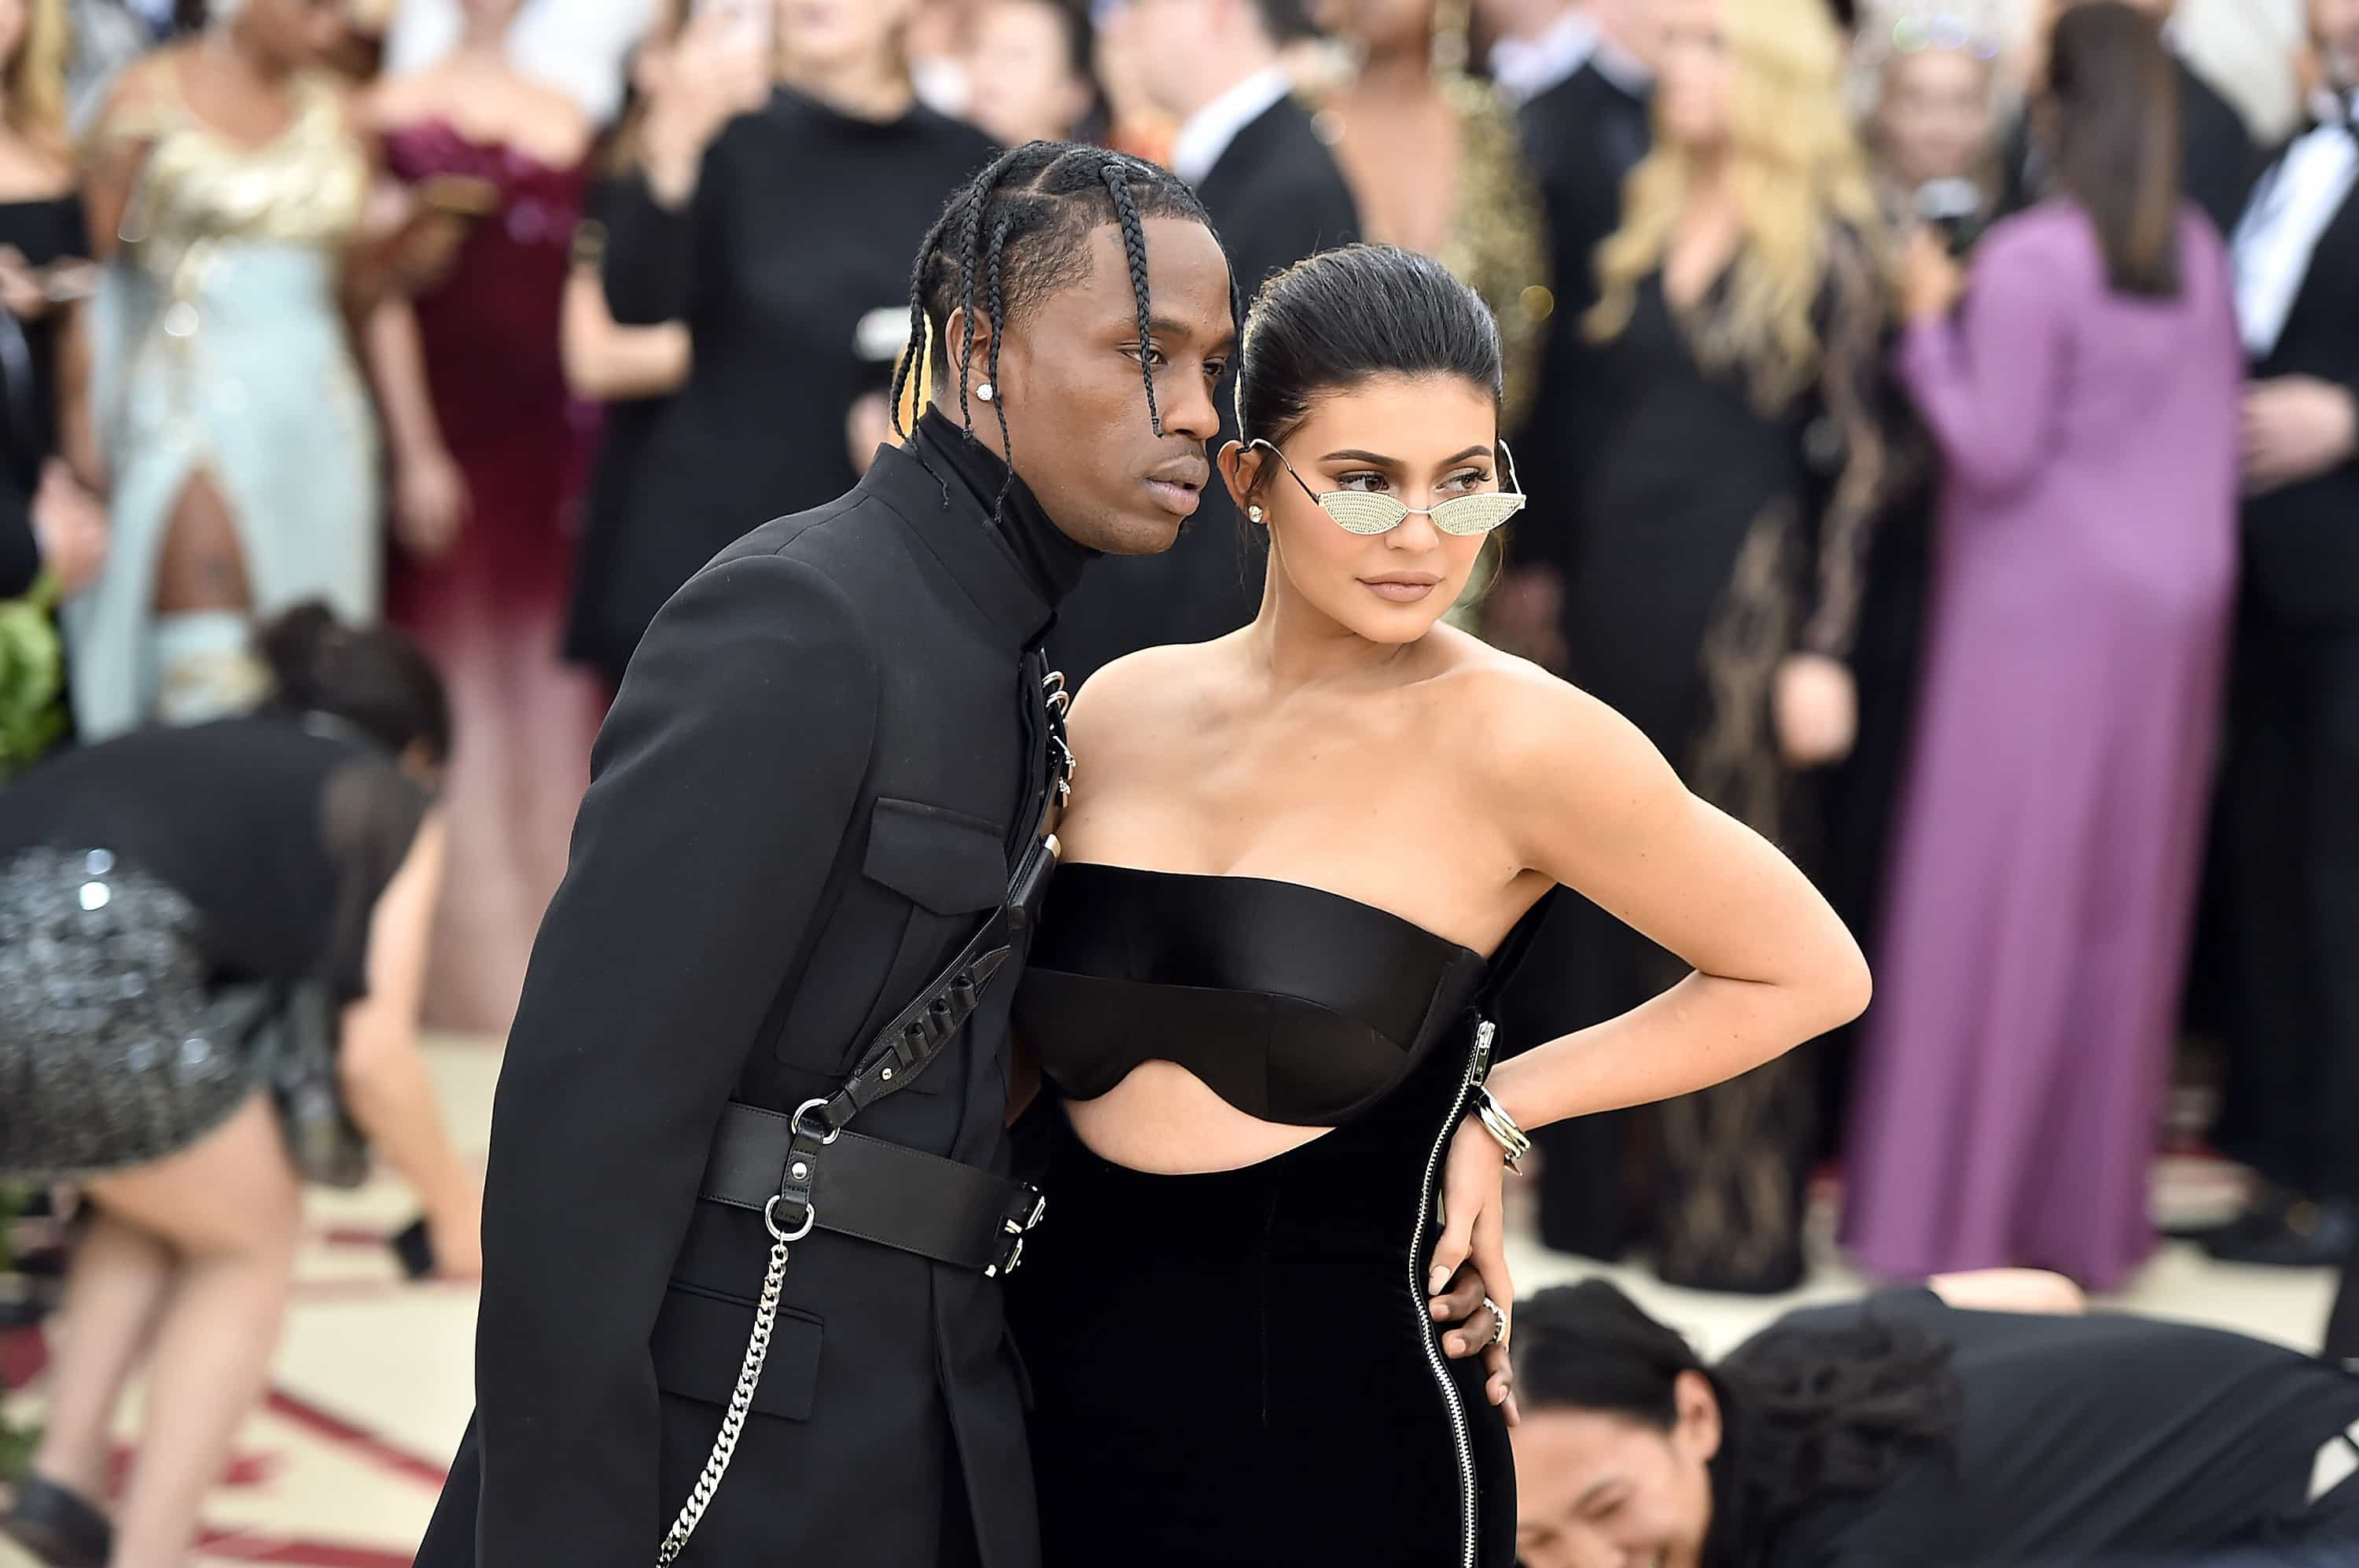 Romantismo e sensualidade: As novas fotos Kylie Jenner e Travis Scott